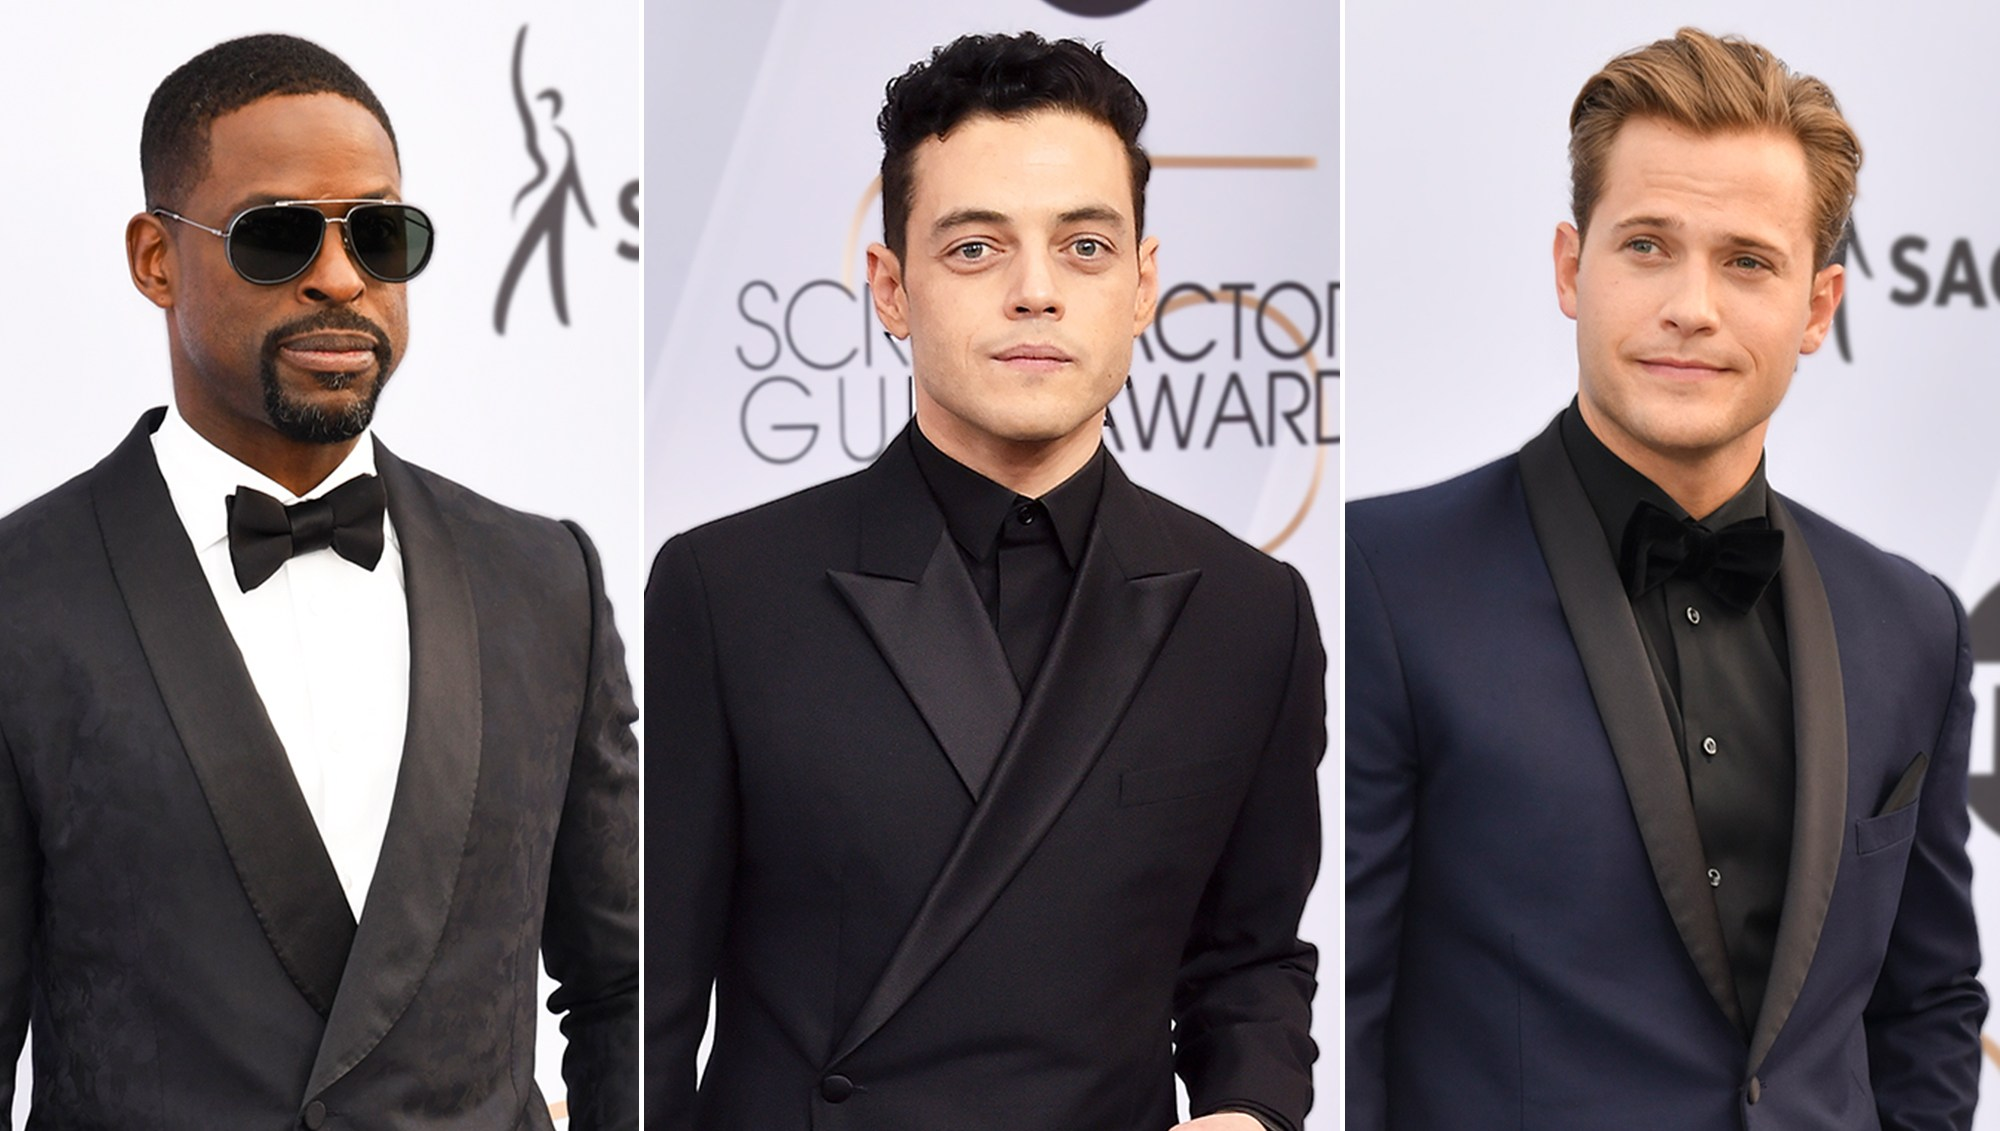 SAG Awards 2019 Hottest Hunks